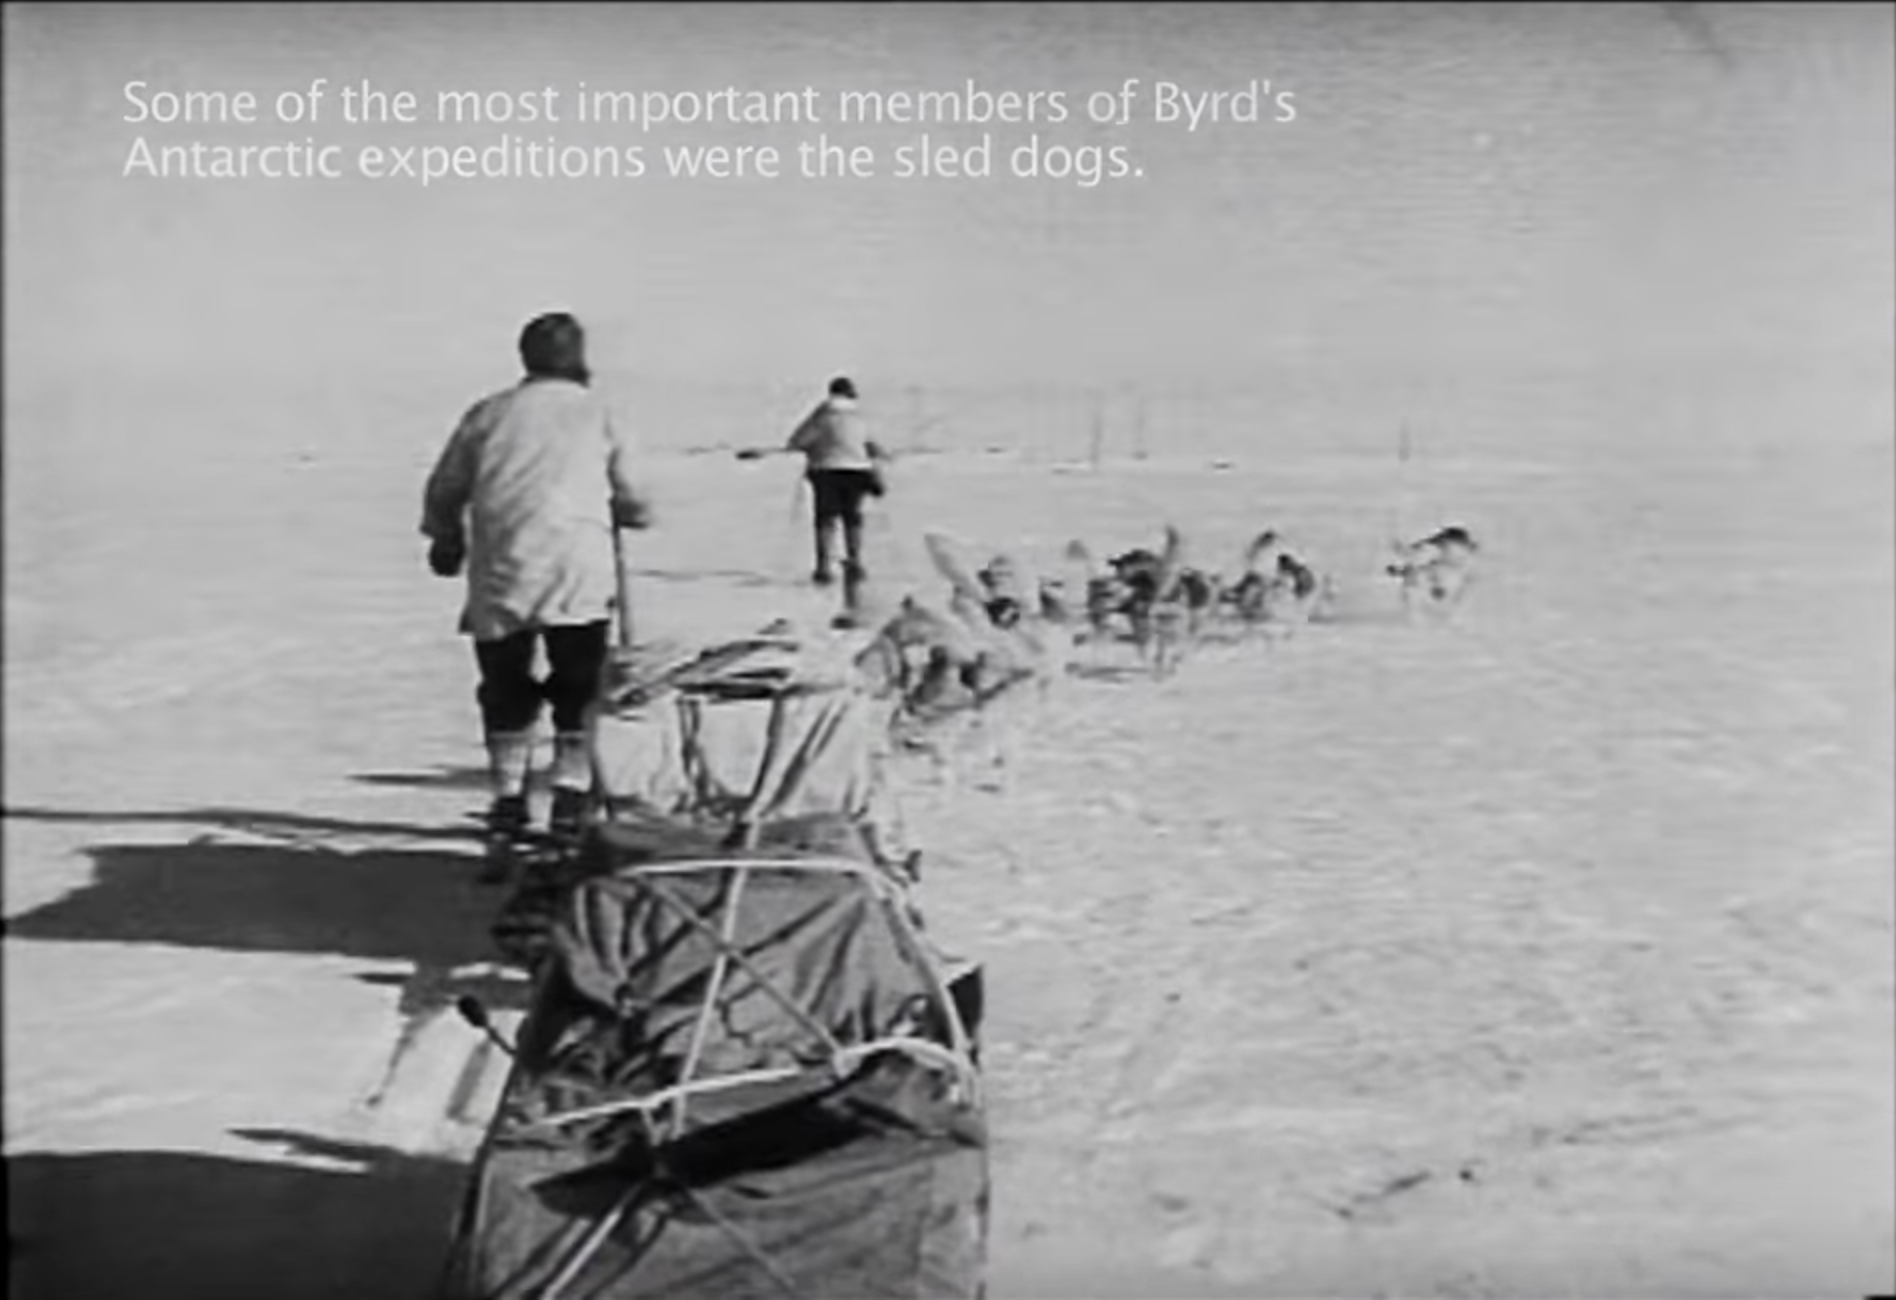 Admiral Byrd and The Dogs of His Expeditions  (0:02:40)